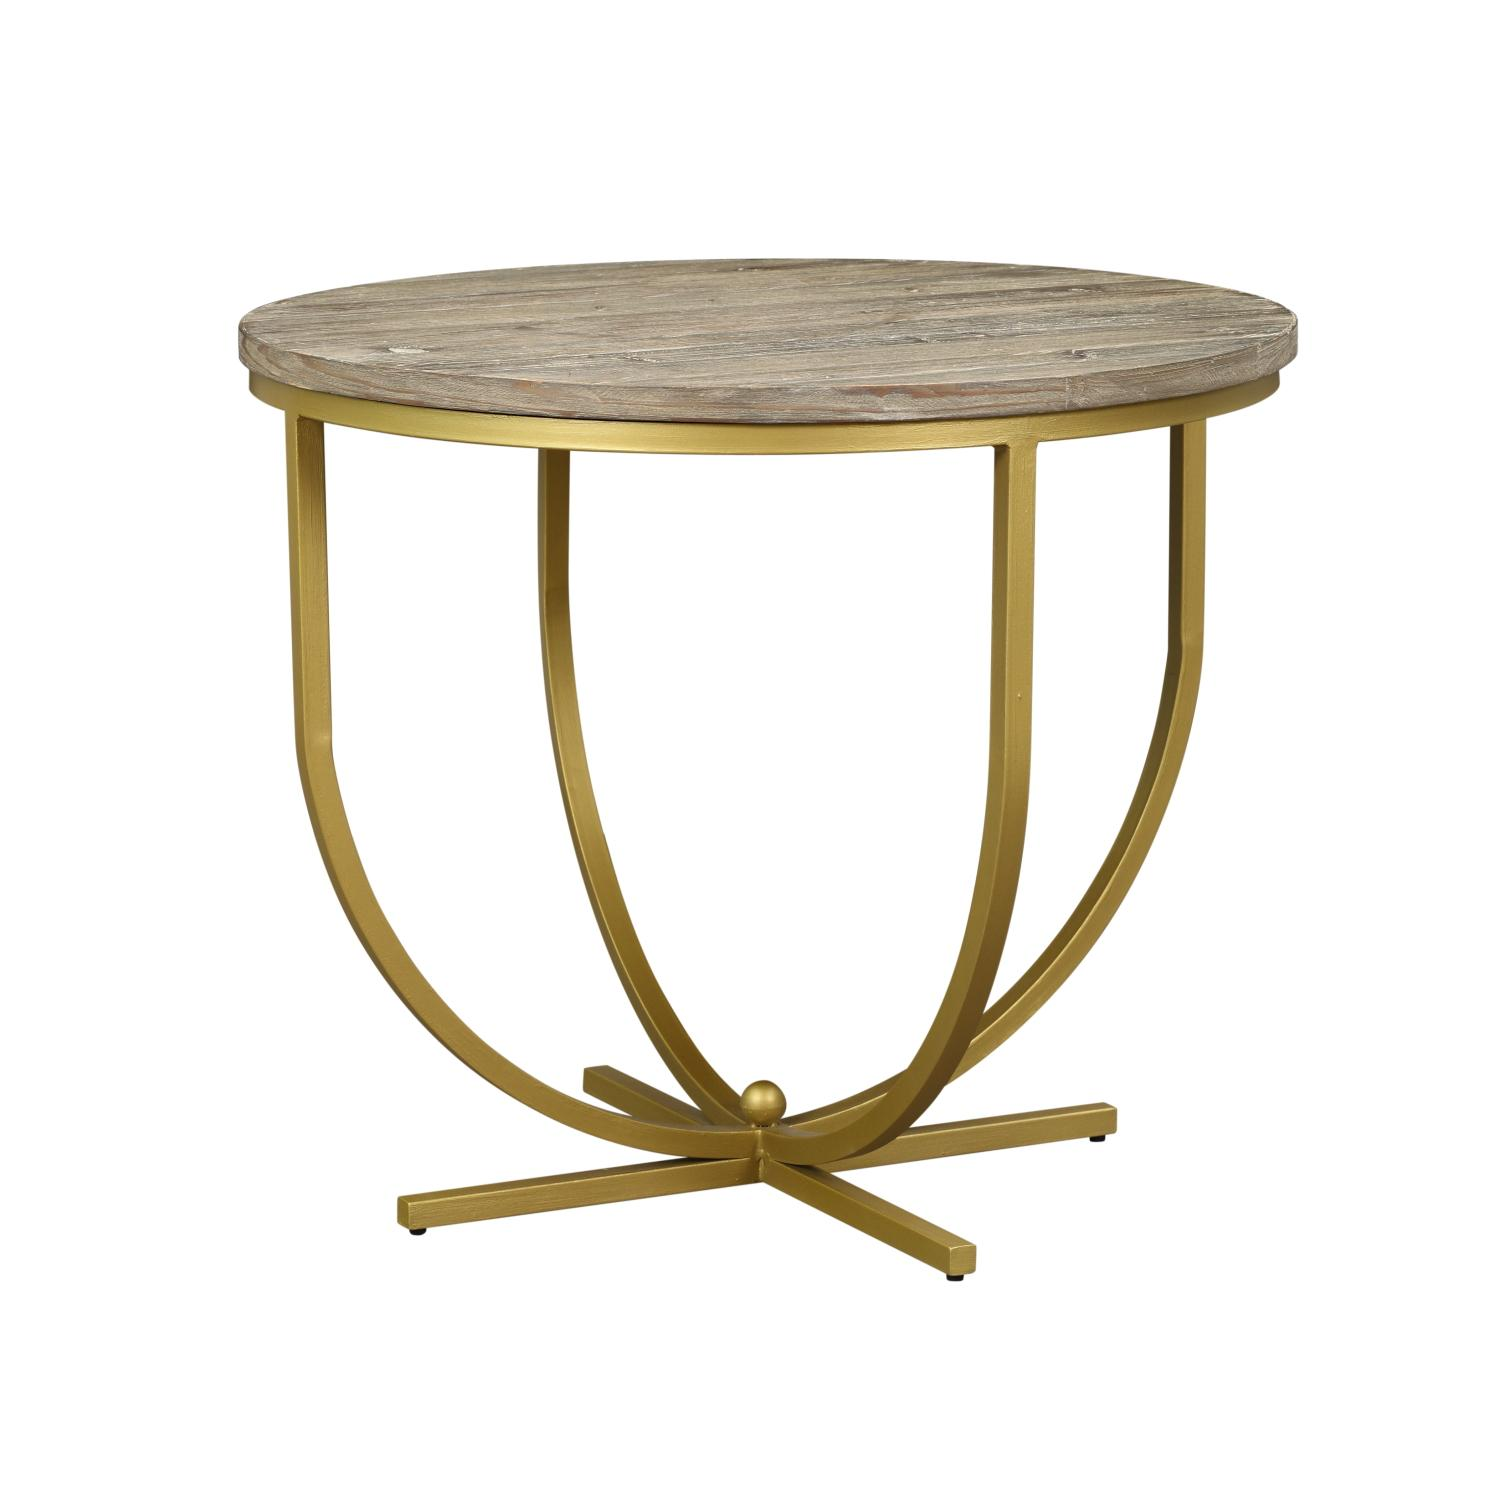 indigo accent table iet end tables file gold storm grey reclaimed mid century modern cocktail home accents dishes wide nightstand foot patio umbrella center cover bedroom night